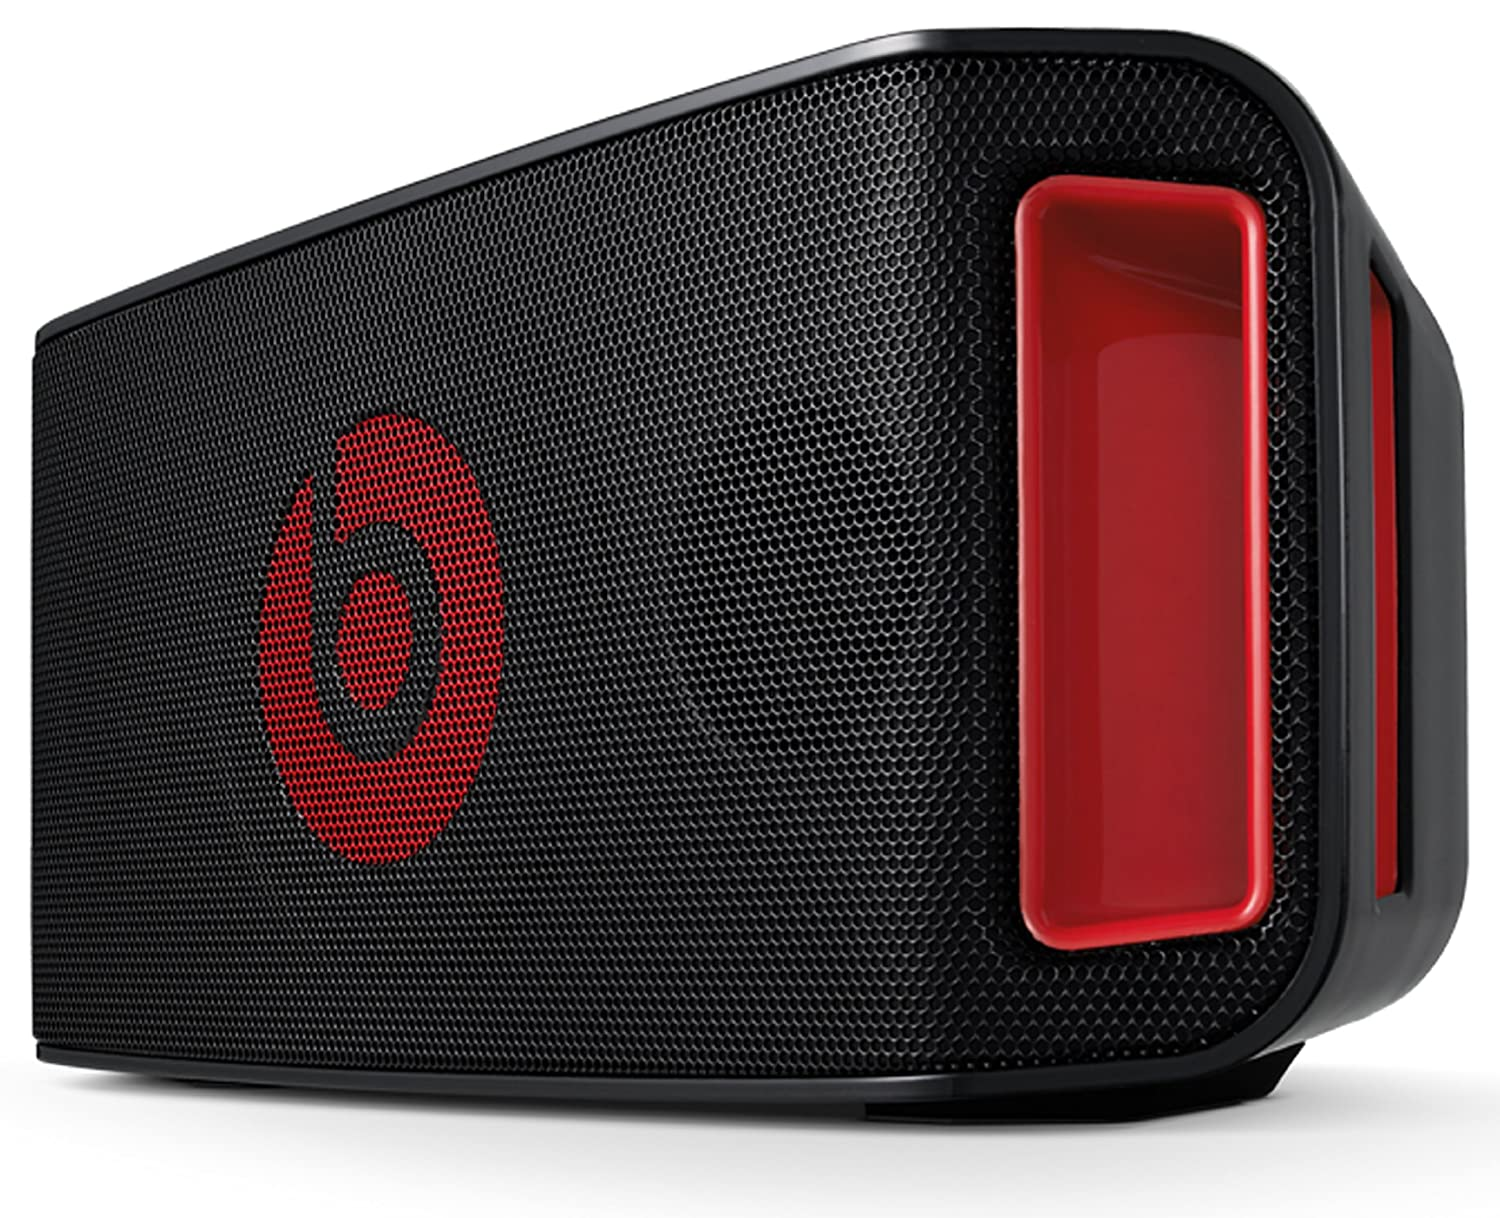 BeatBox by Dr. Dre